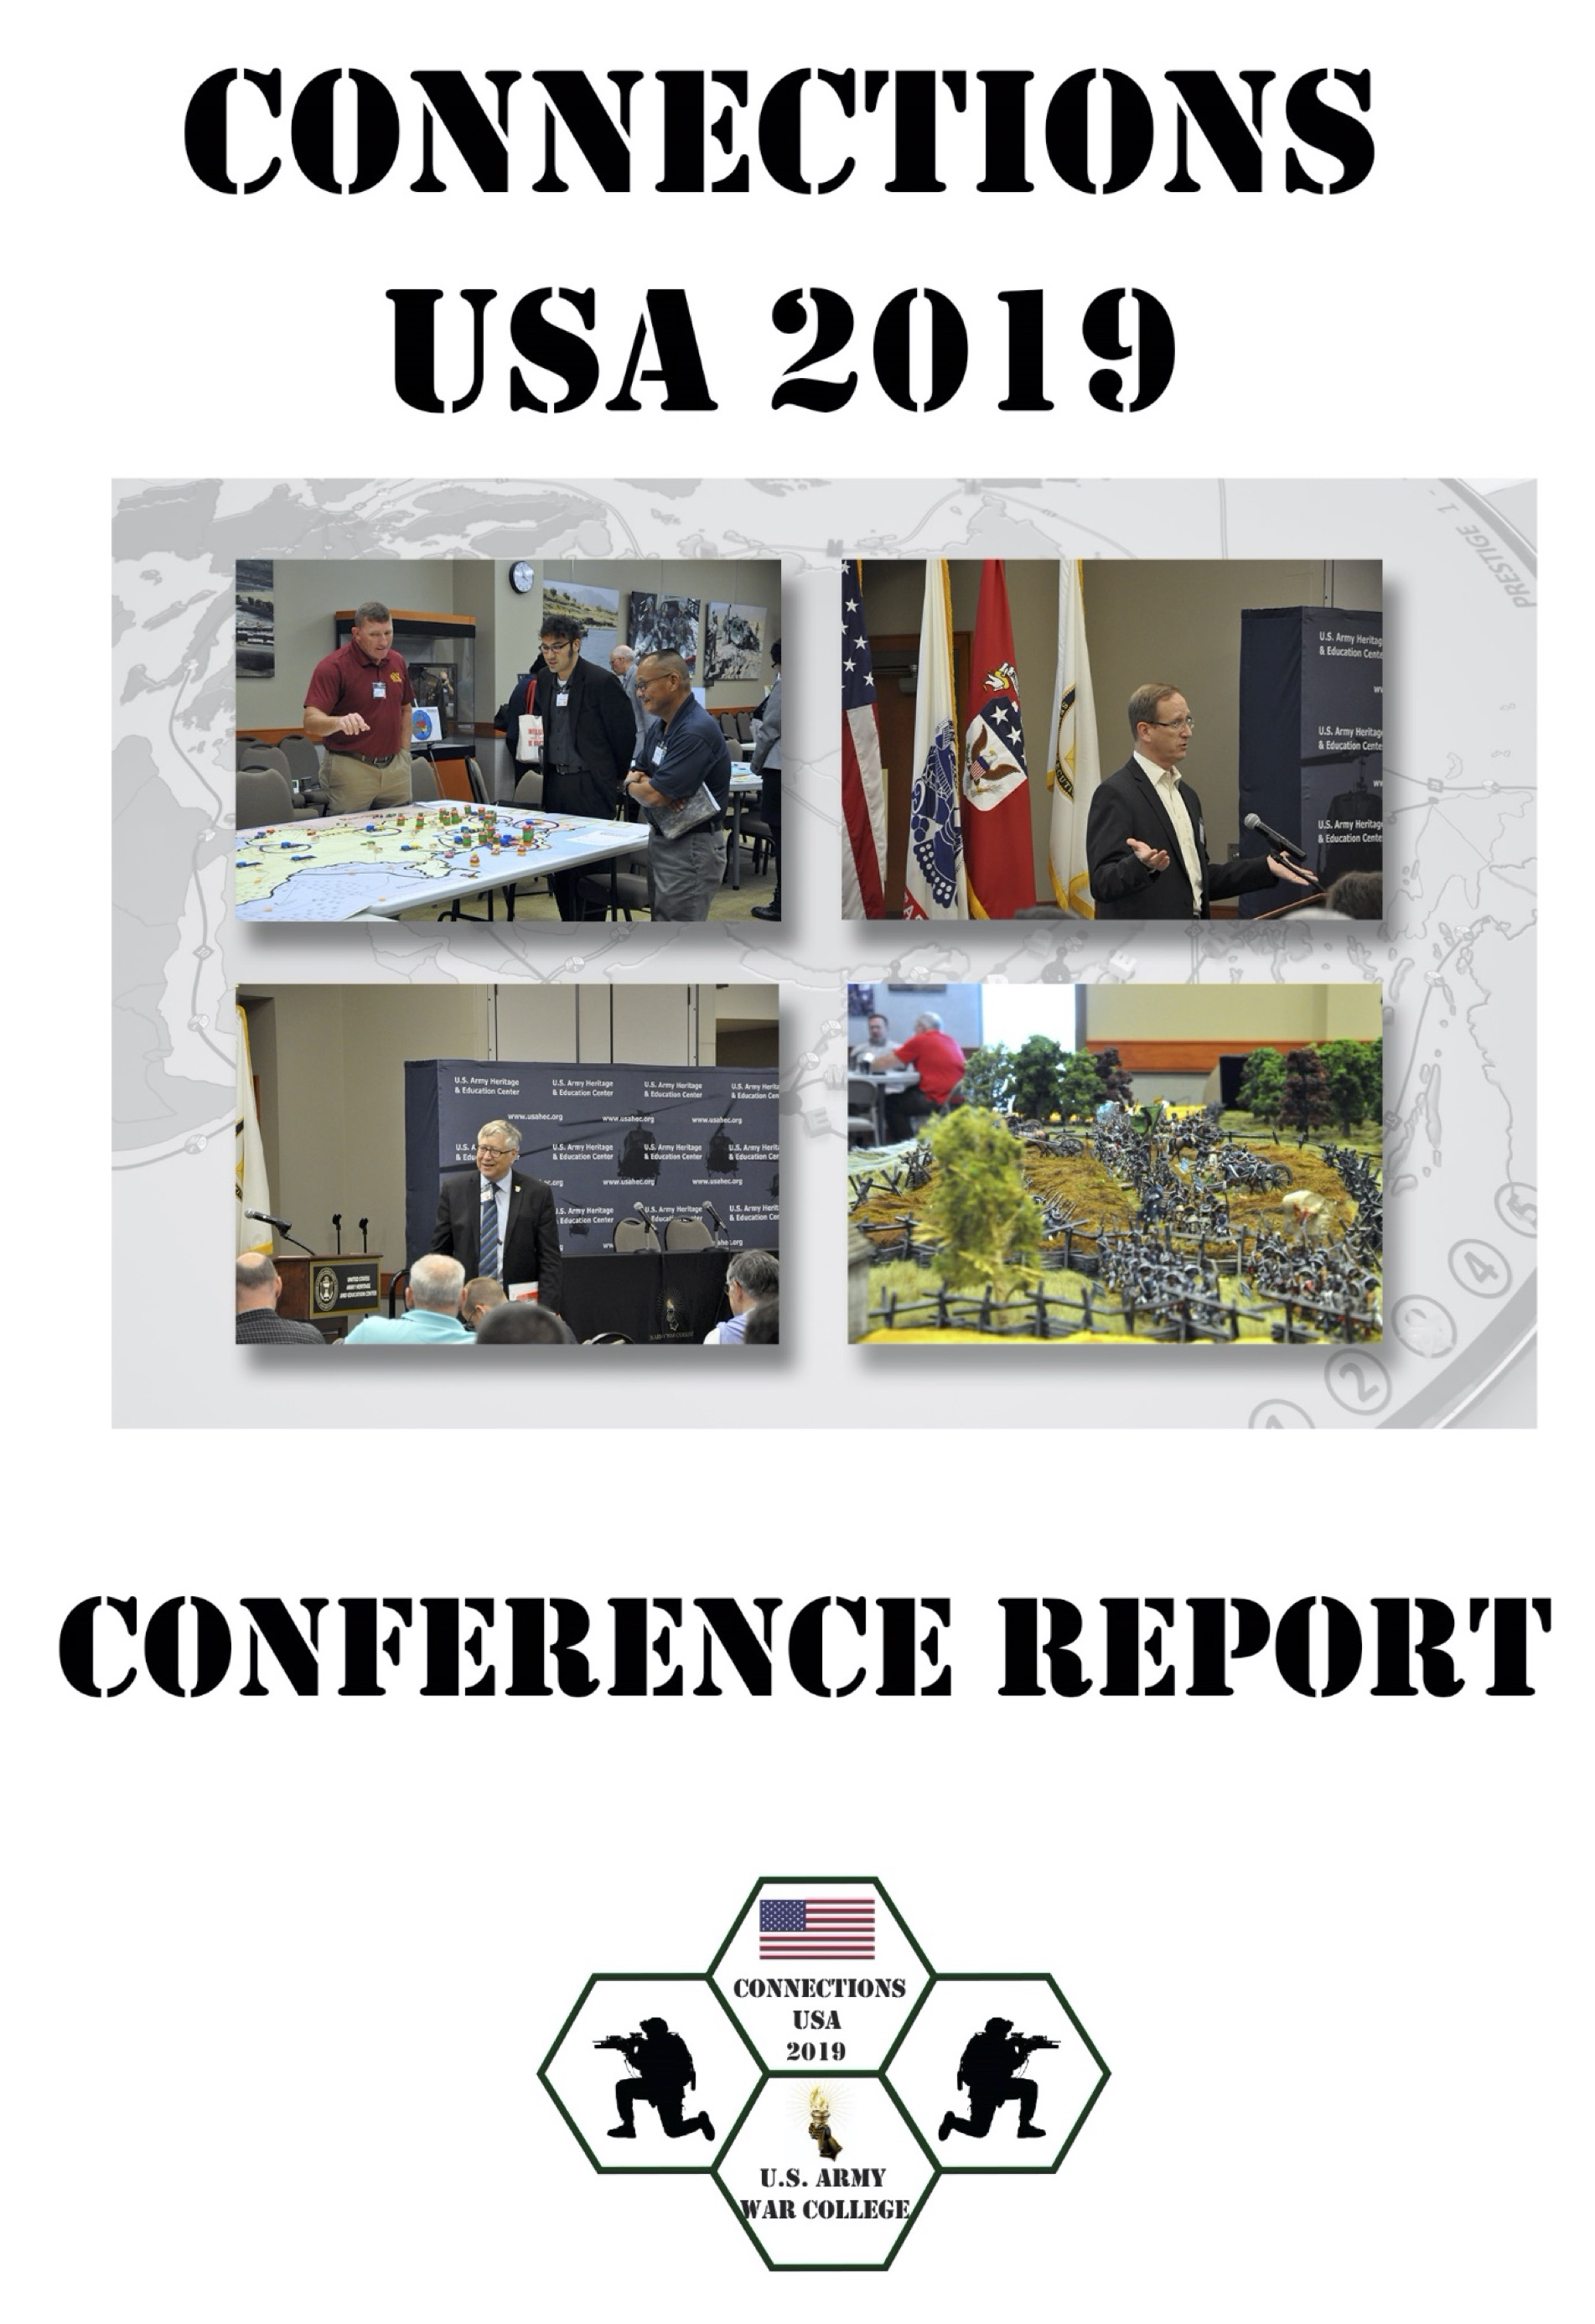 connections-usa-2019-conference-report_final.jpg